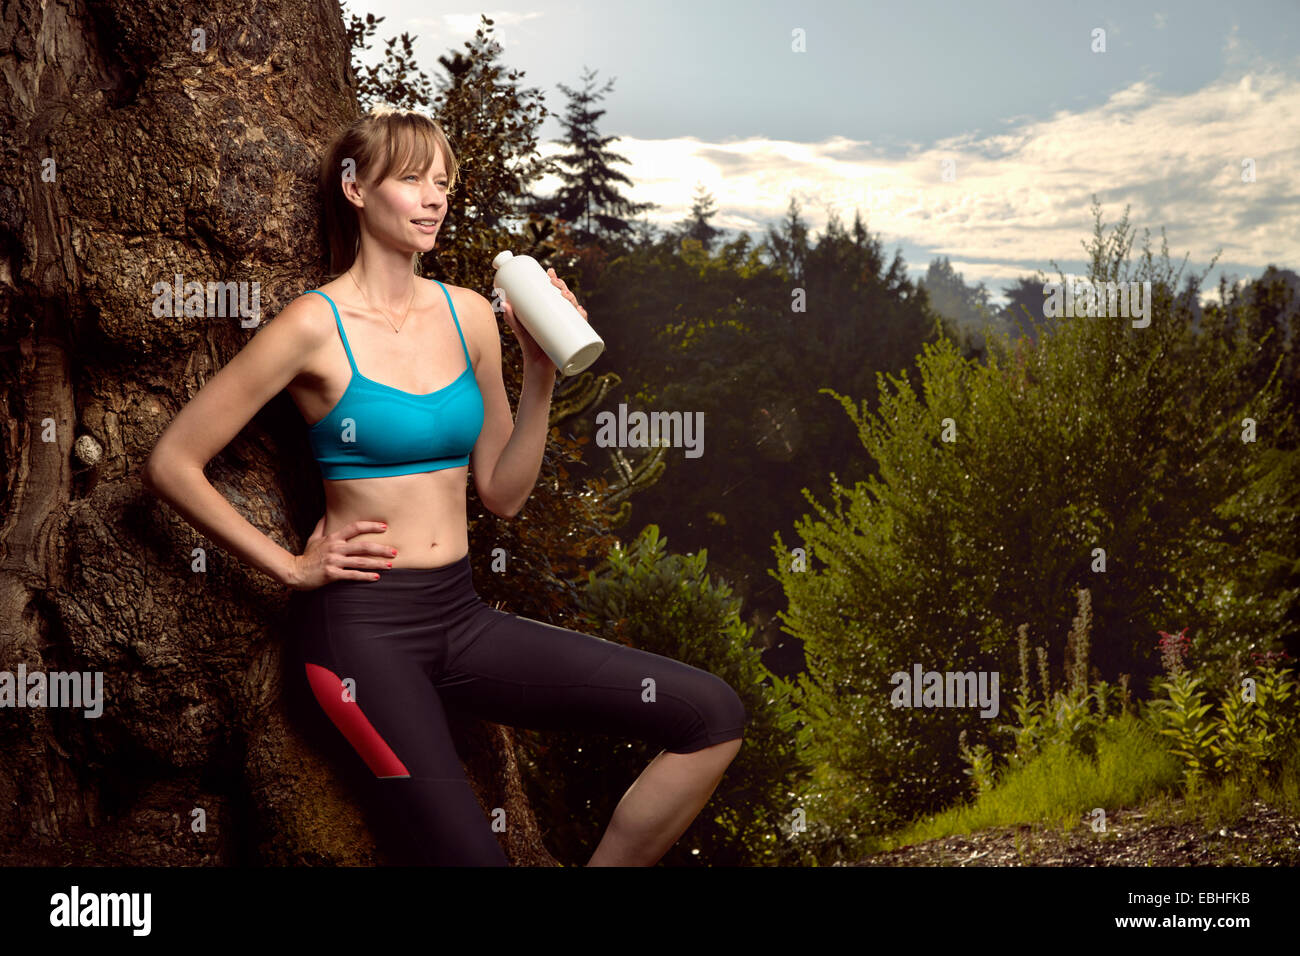 Female runner leaning against rock in park drinking water - Stock Image